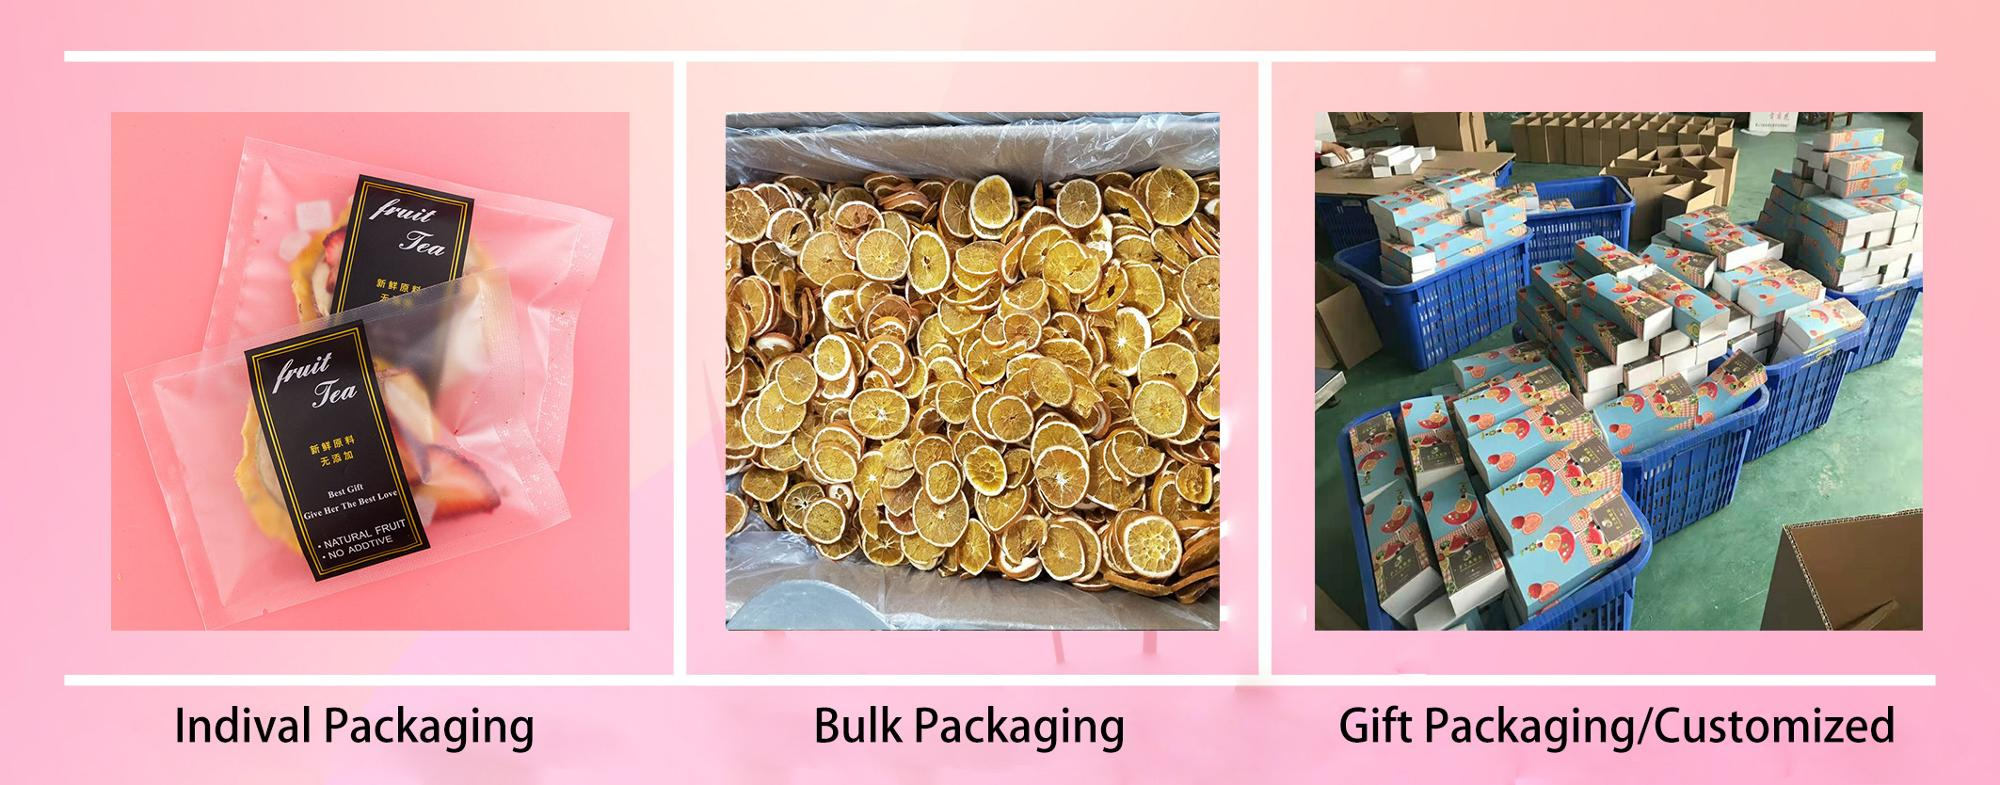 Factory wholesale high quality freeze-dried lemon slices from China - 4uTea | 4uTea.com